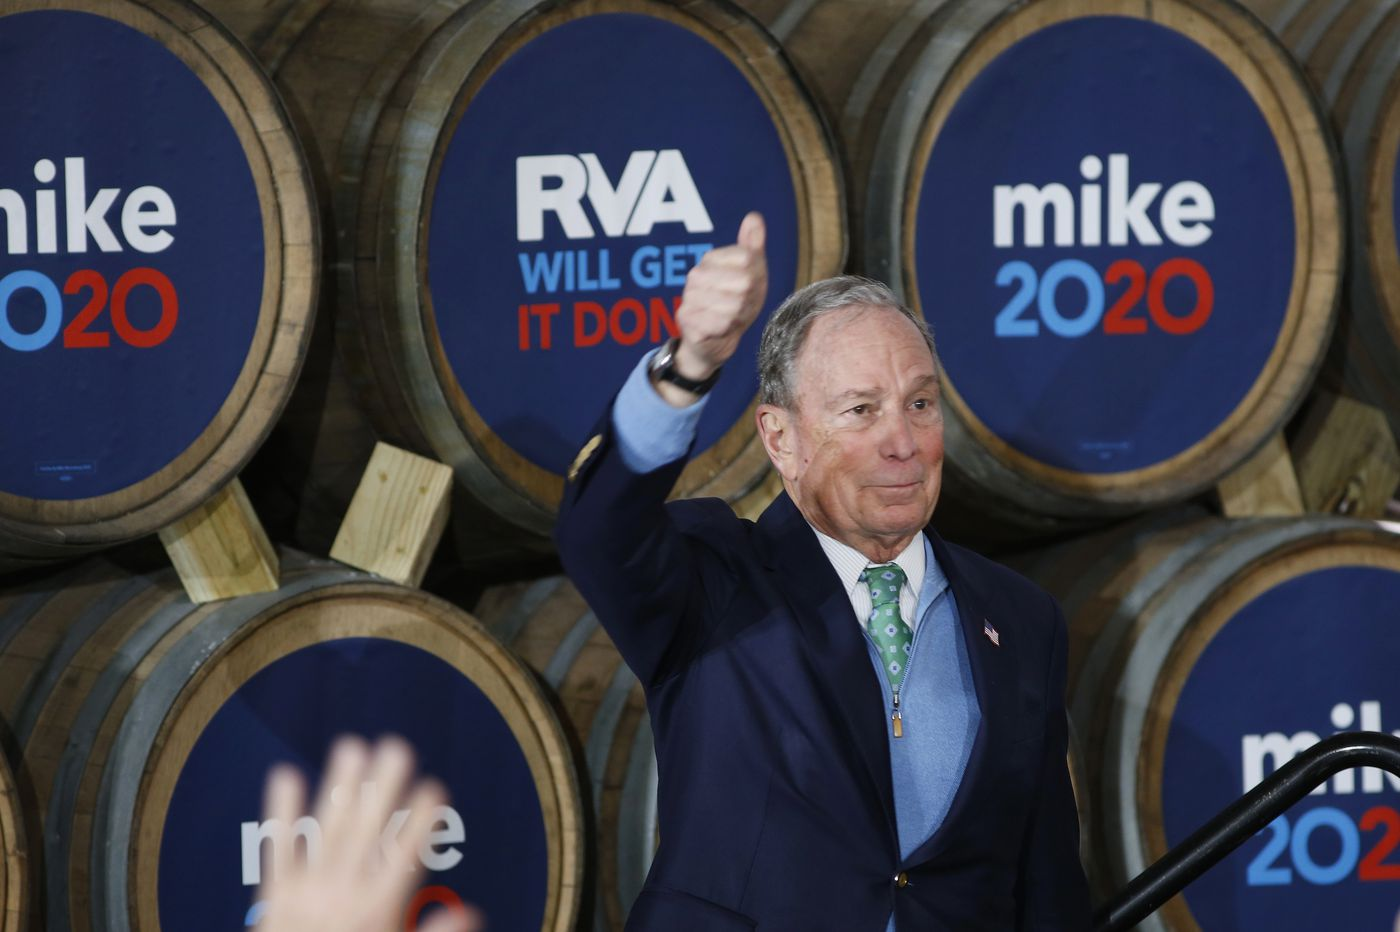 Mike Bloomberg makes Wednesday's debate stage, facing Democratic rivals for 1st time